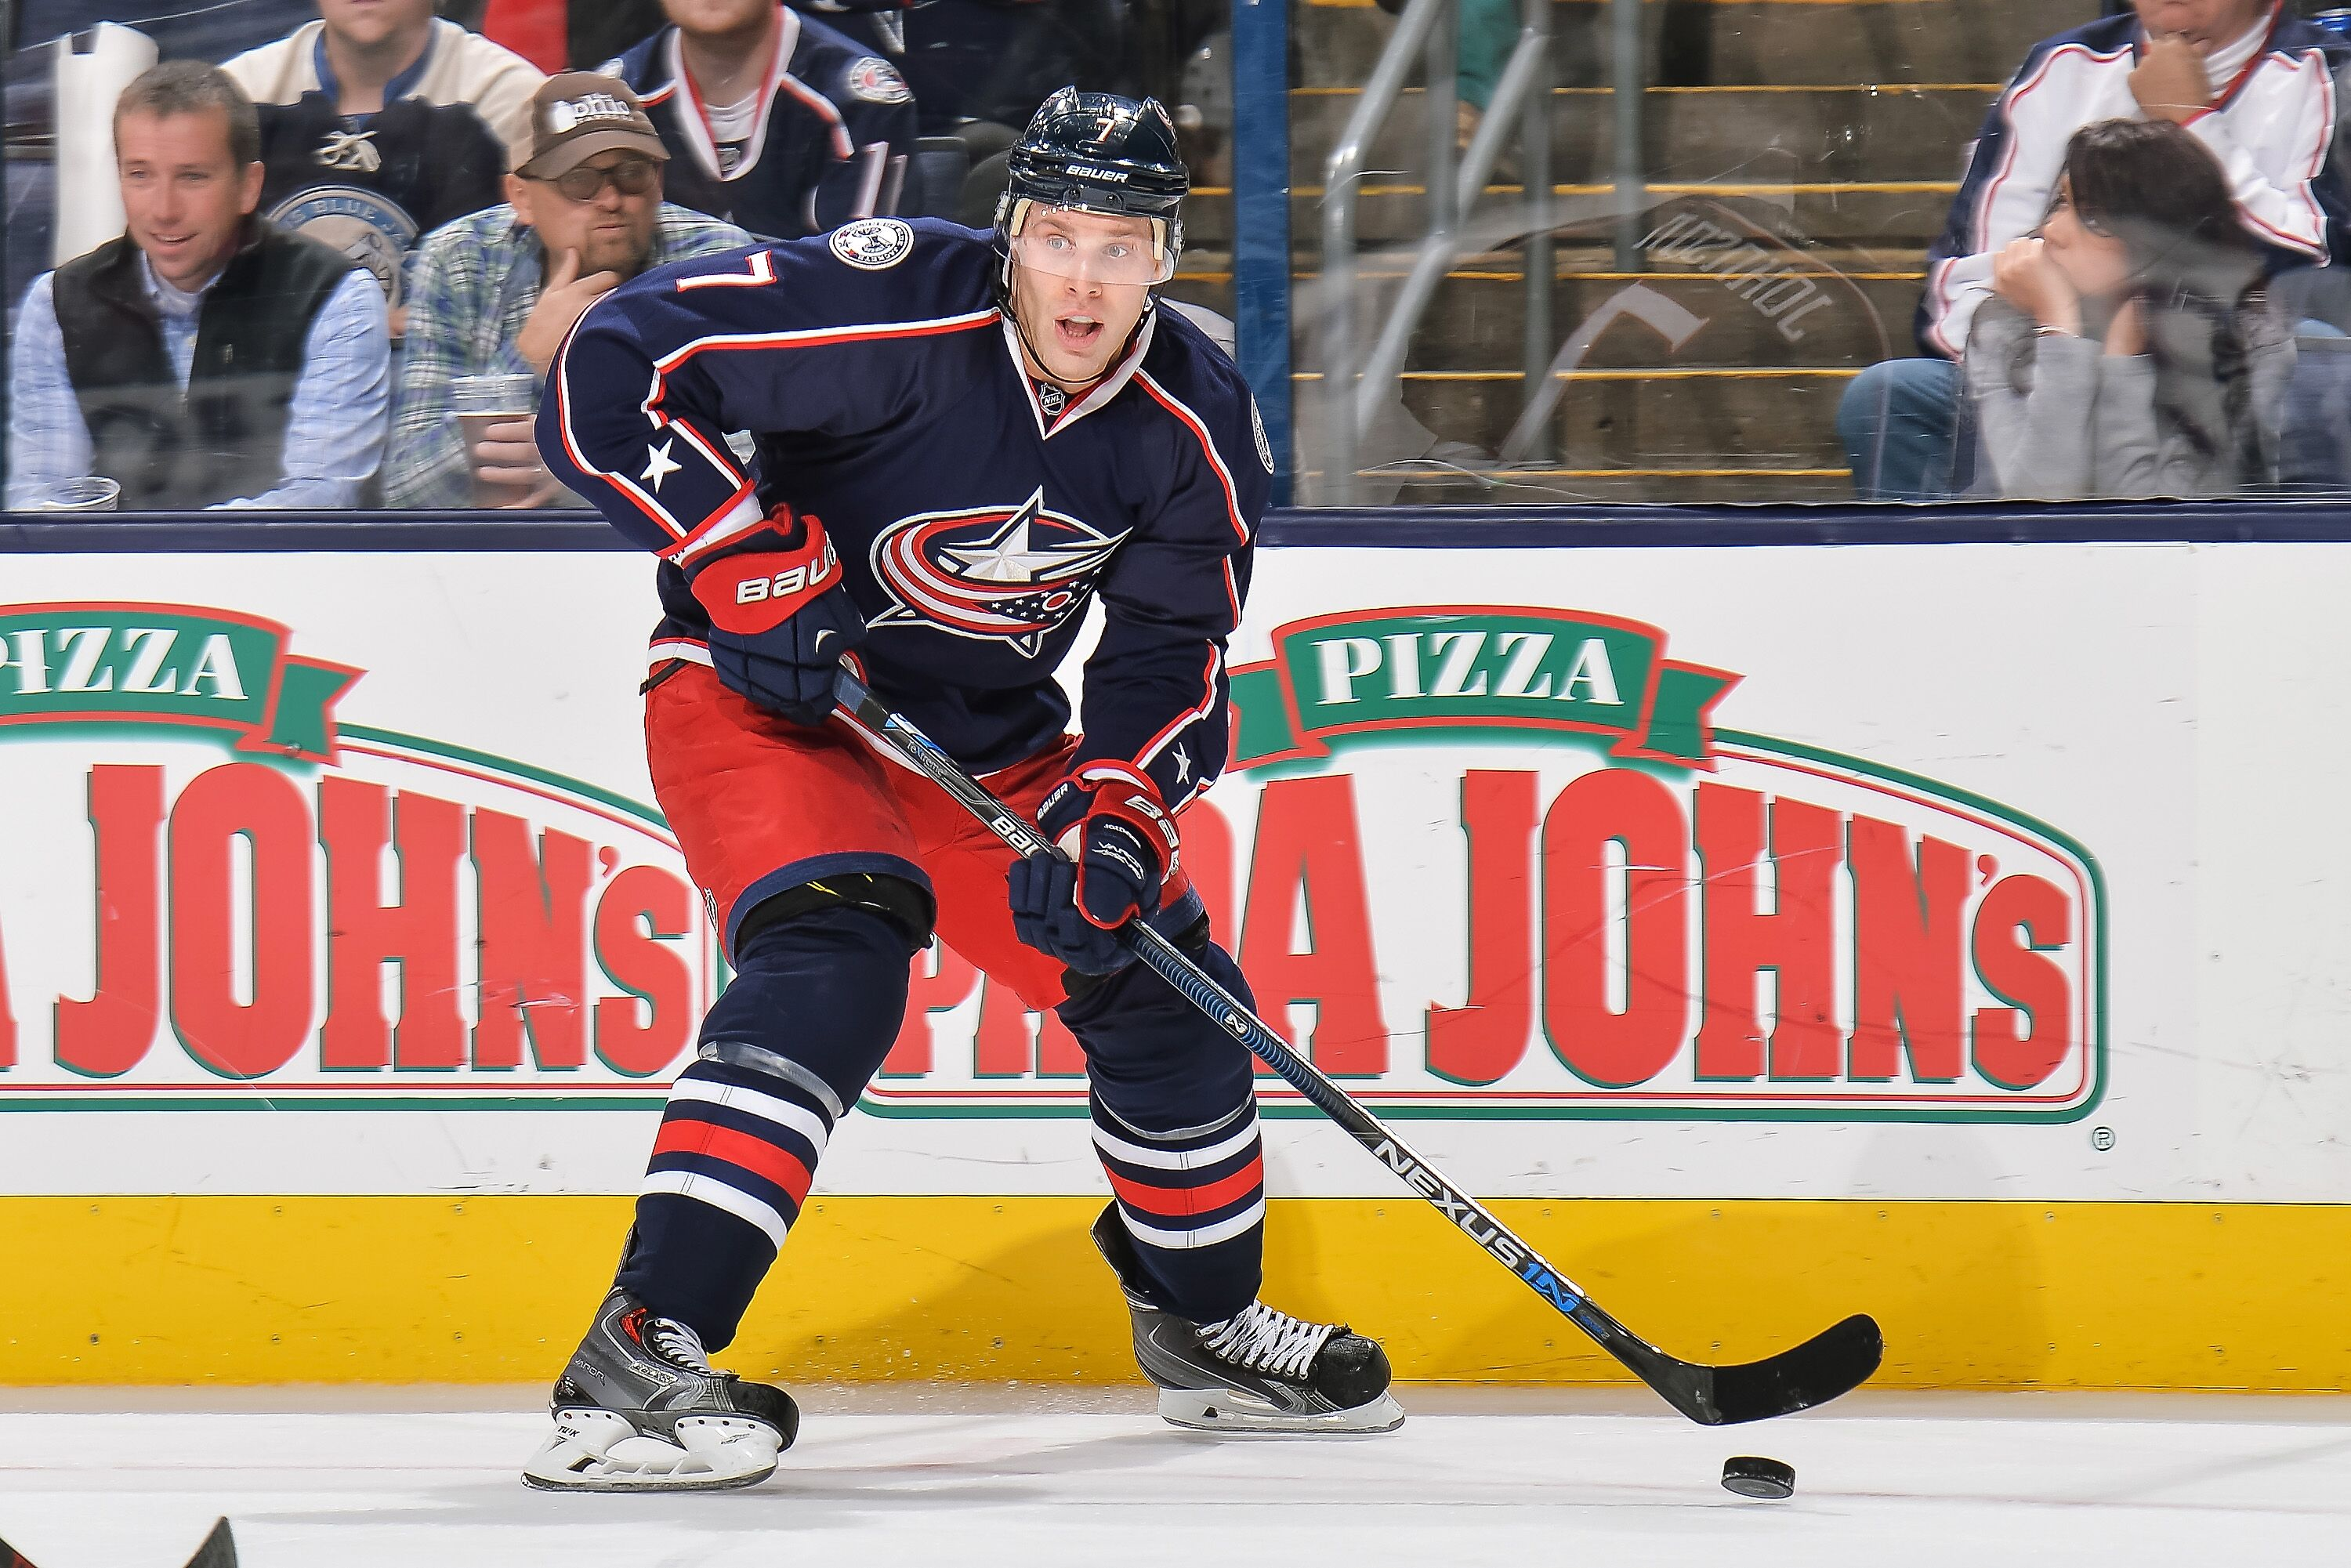 Columbus Blue Jackets: Jack Johnson will be Motivated in 2017-18